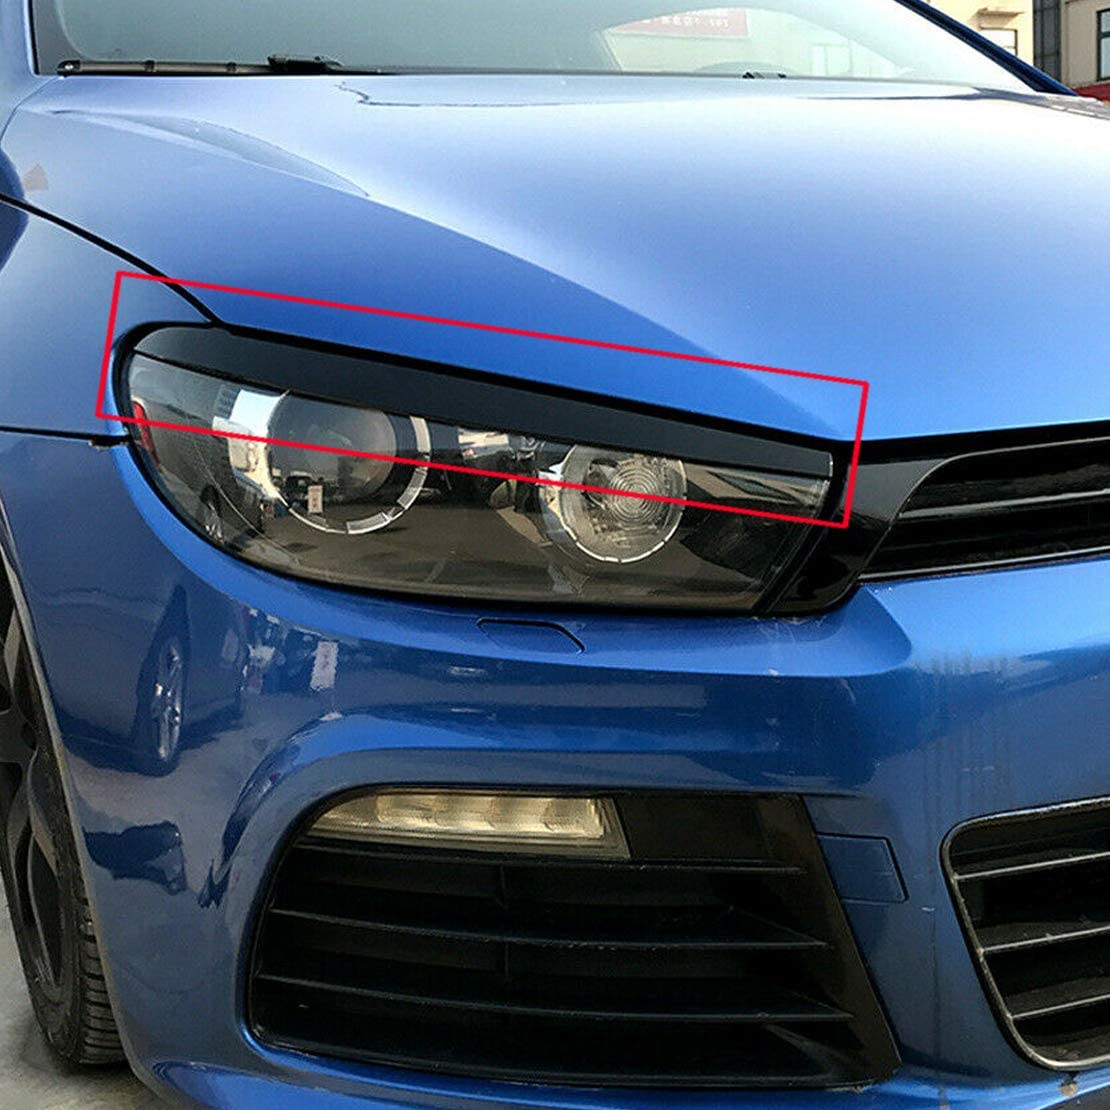 LETAOSK 1Pair Front Head Light Lamp Eyebrow Trim Fit For VW Scirocco 2009-2017